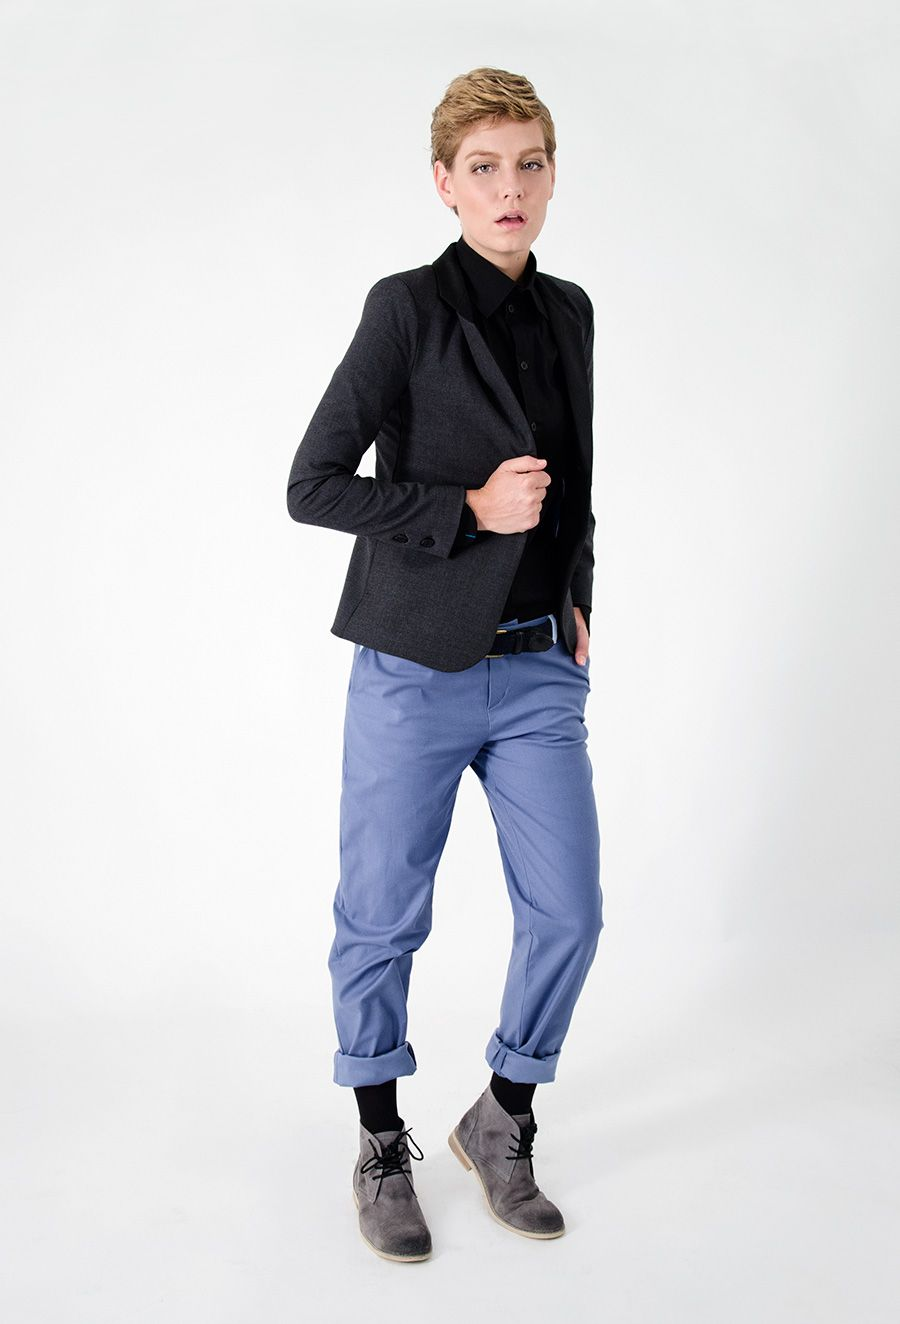 Black And Blue. Androgynous Fashion. | Androgynous Fashion | Pinterest | Androgynous Fashion ...